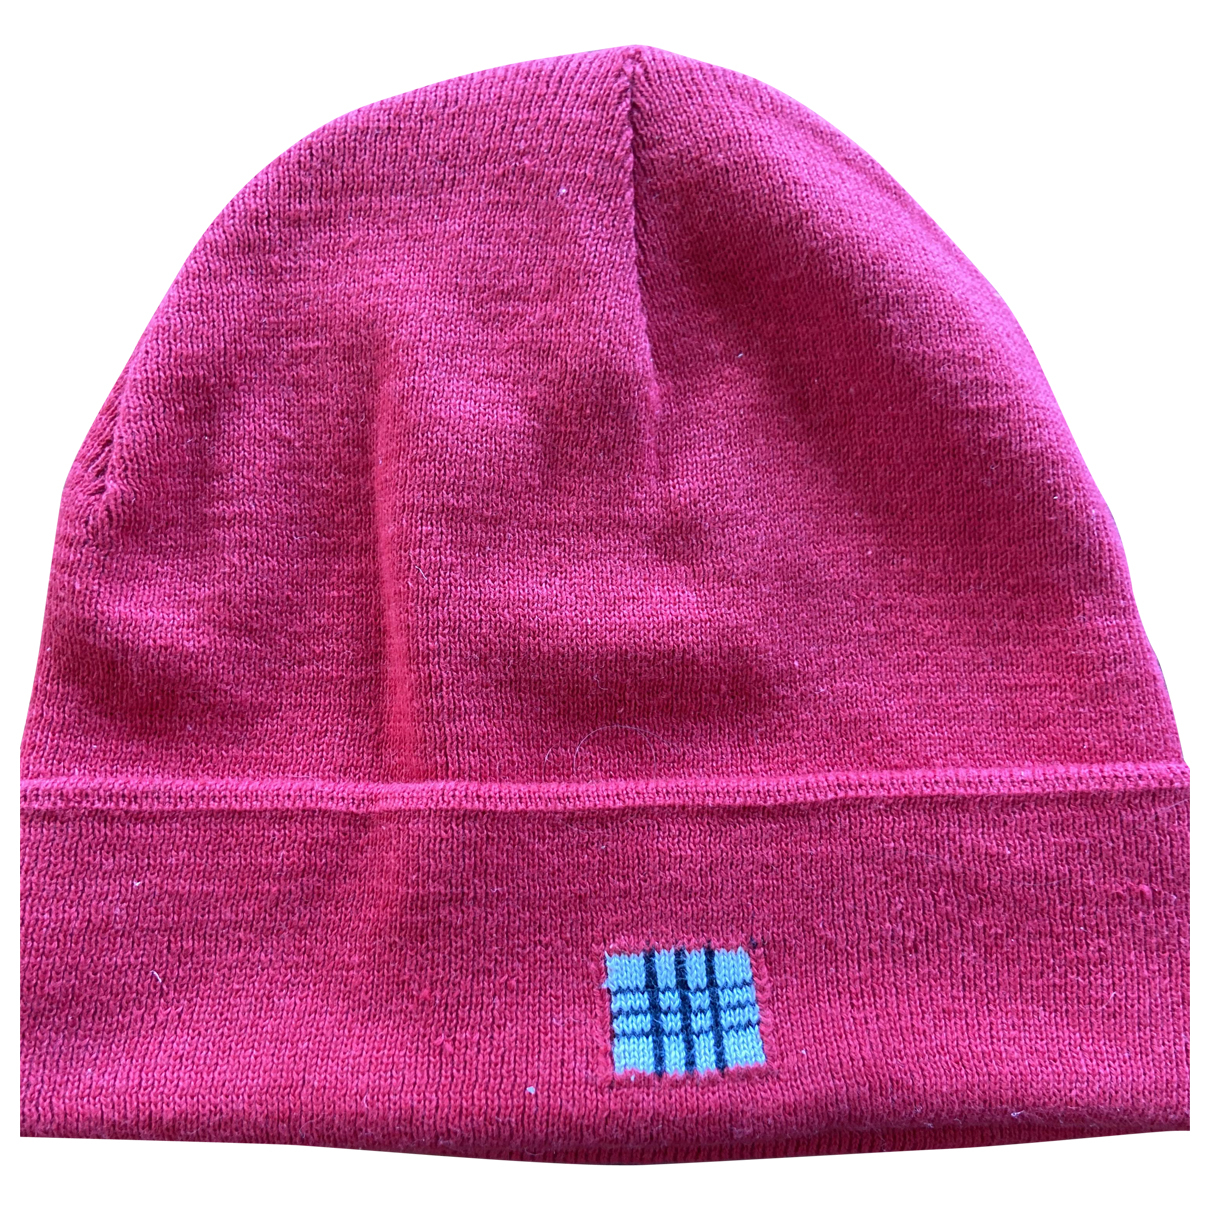 Burberry N Red Cotton hat for Women M International